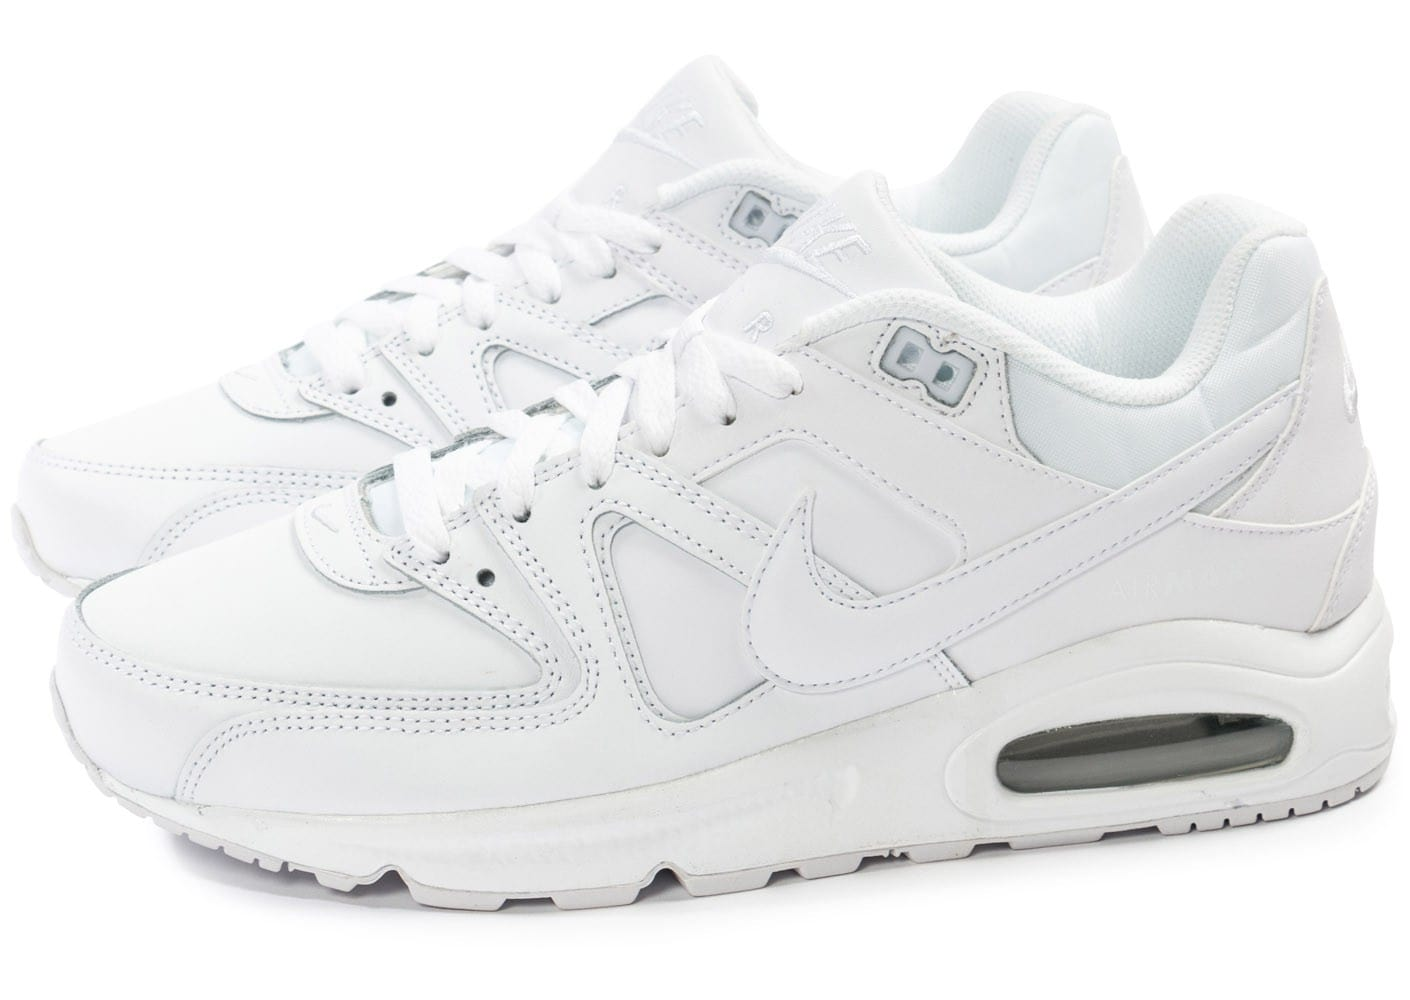 nike air max 90 command homme blanche